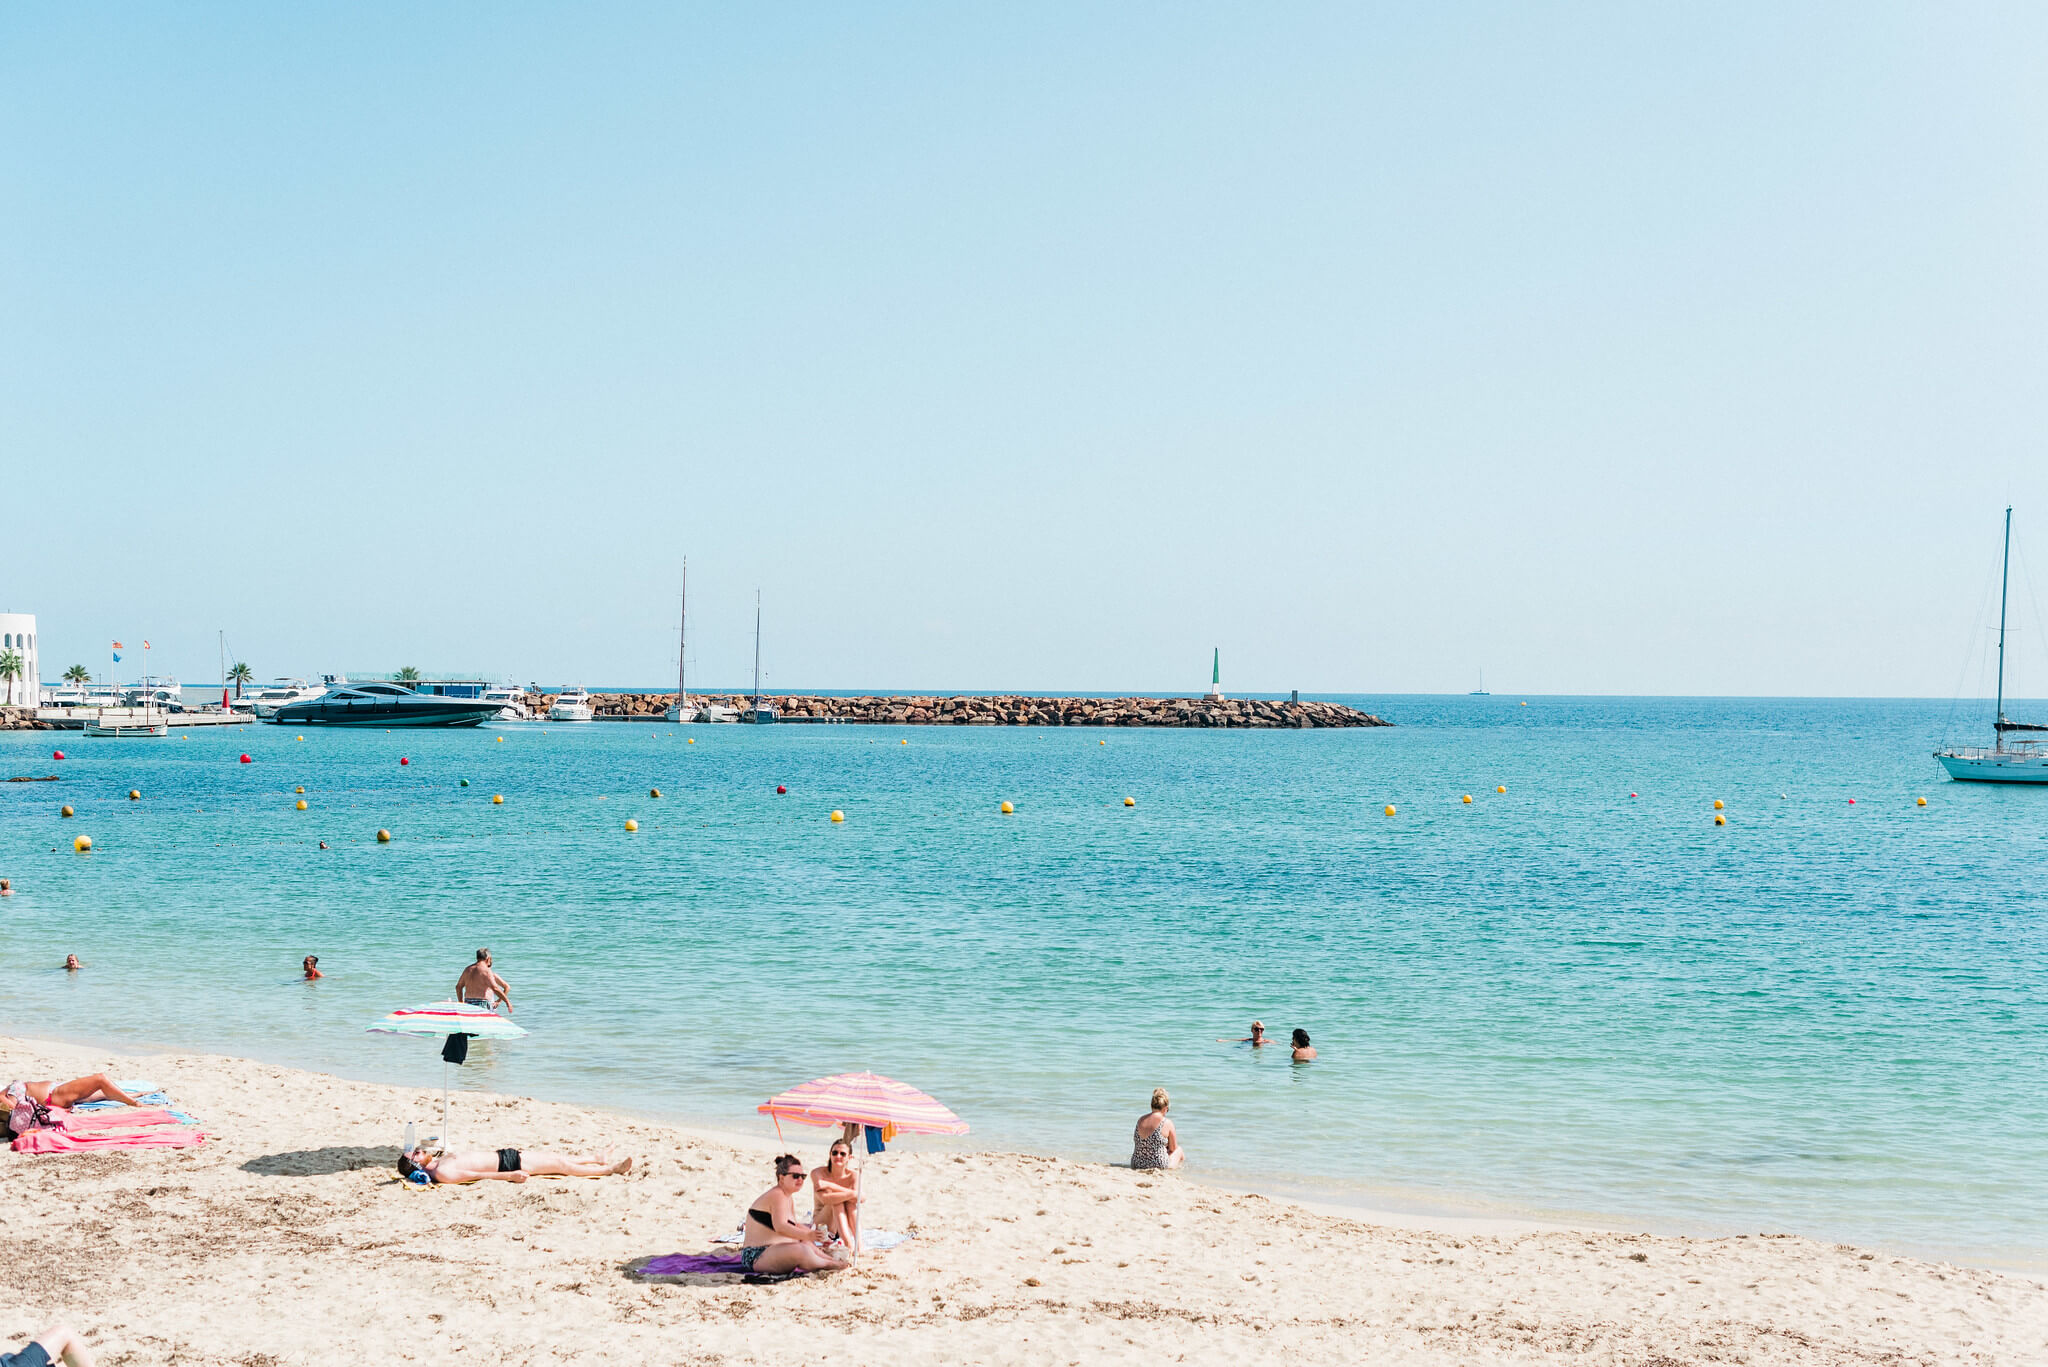 https://www.white-ibiza.com/wp-content/uploads/2020/03/ibiza-beaches-santa-eulalia-03.jpg